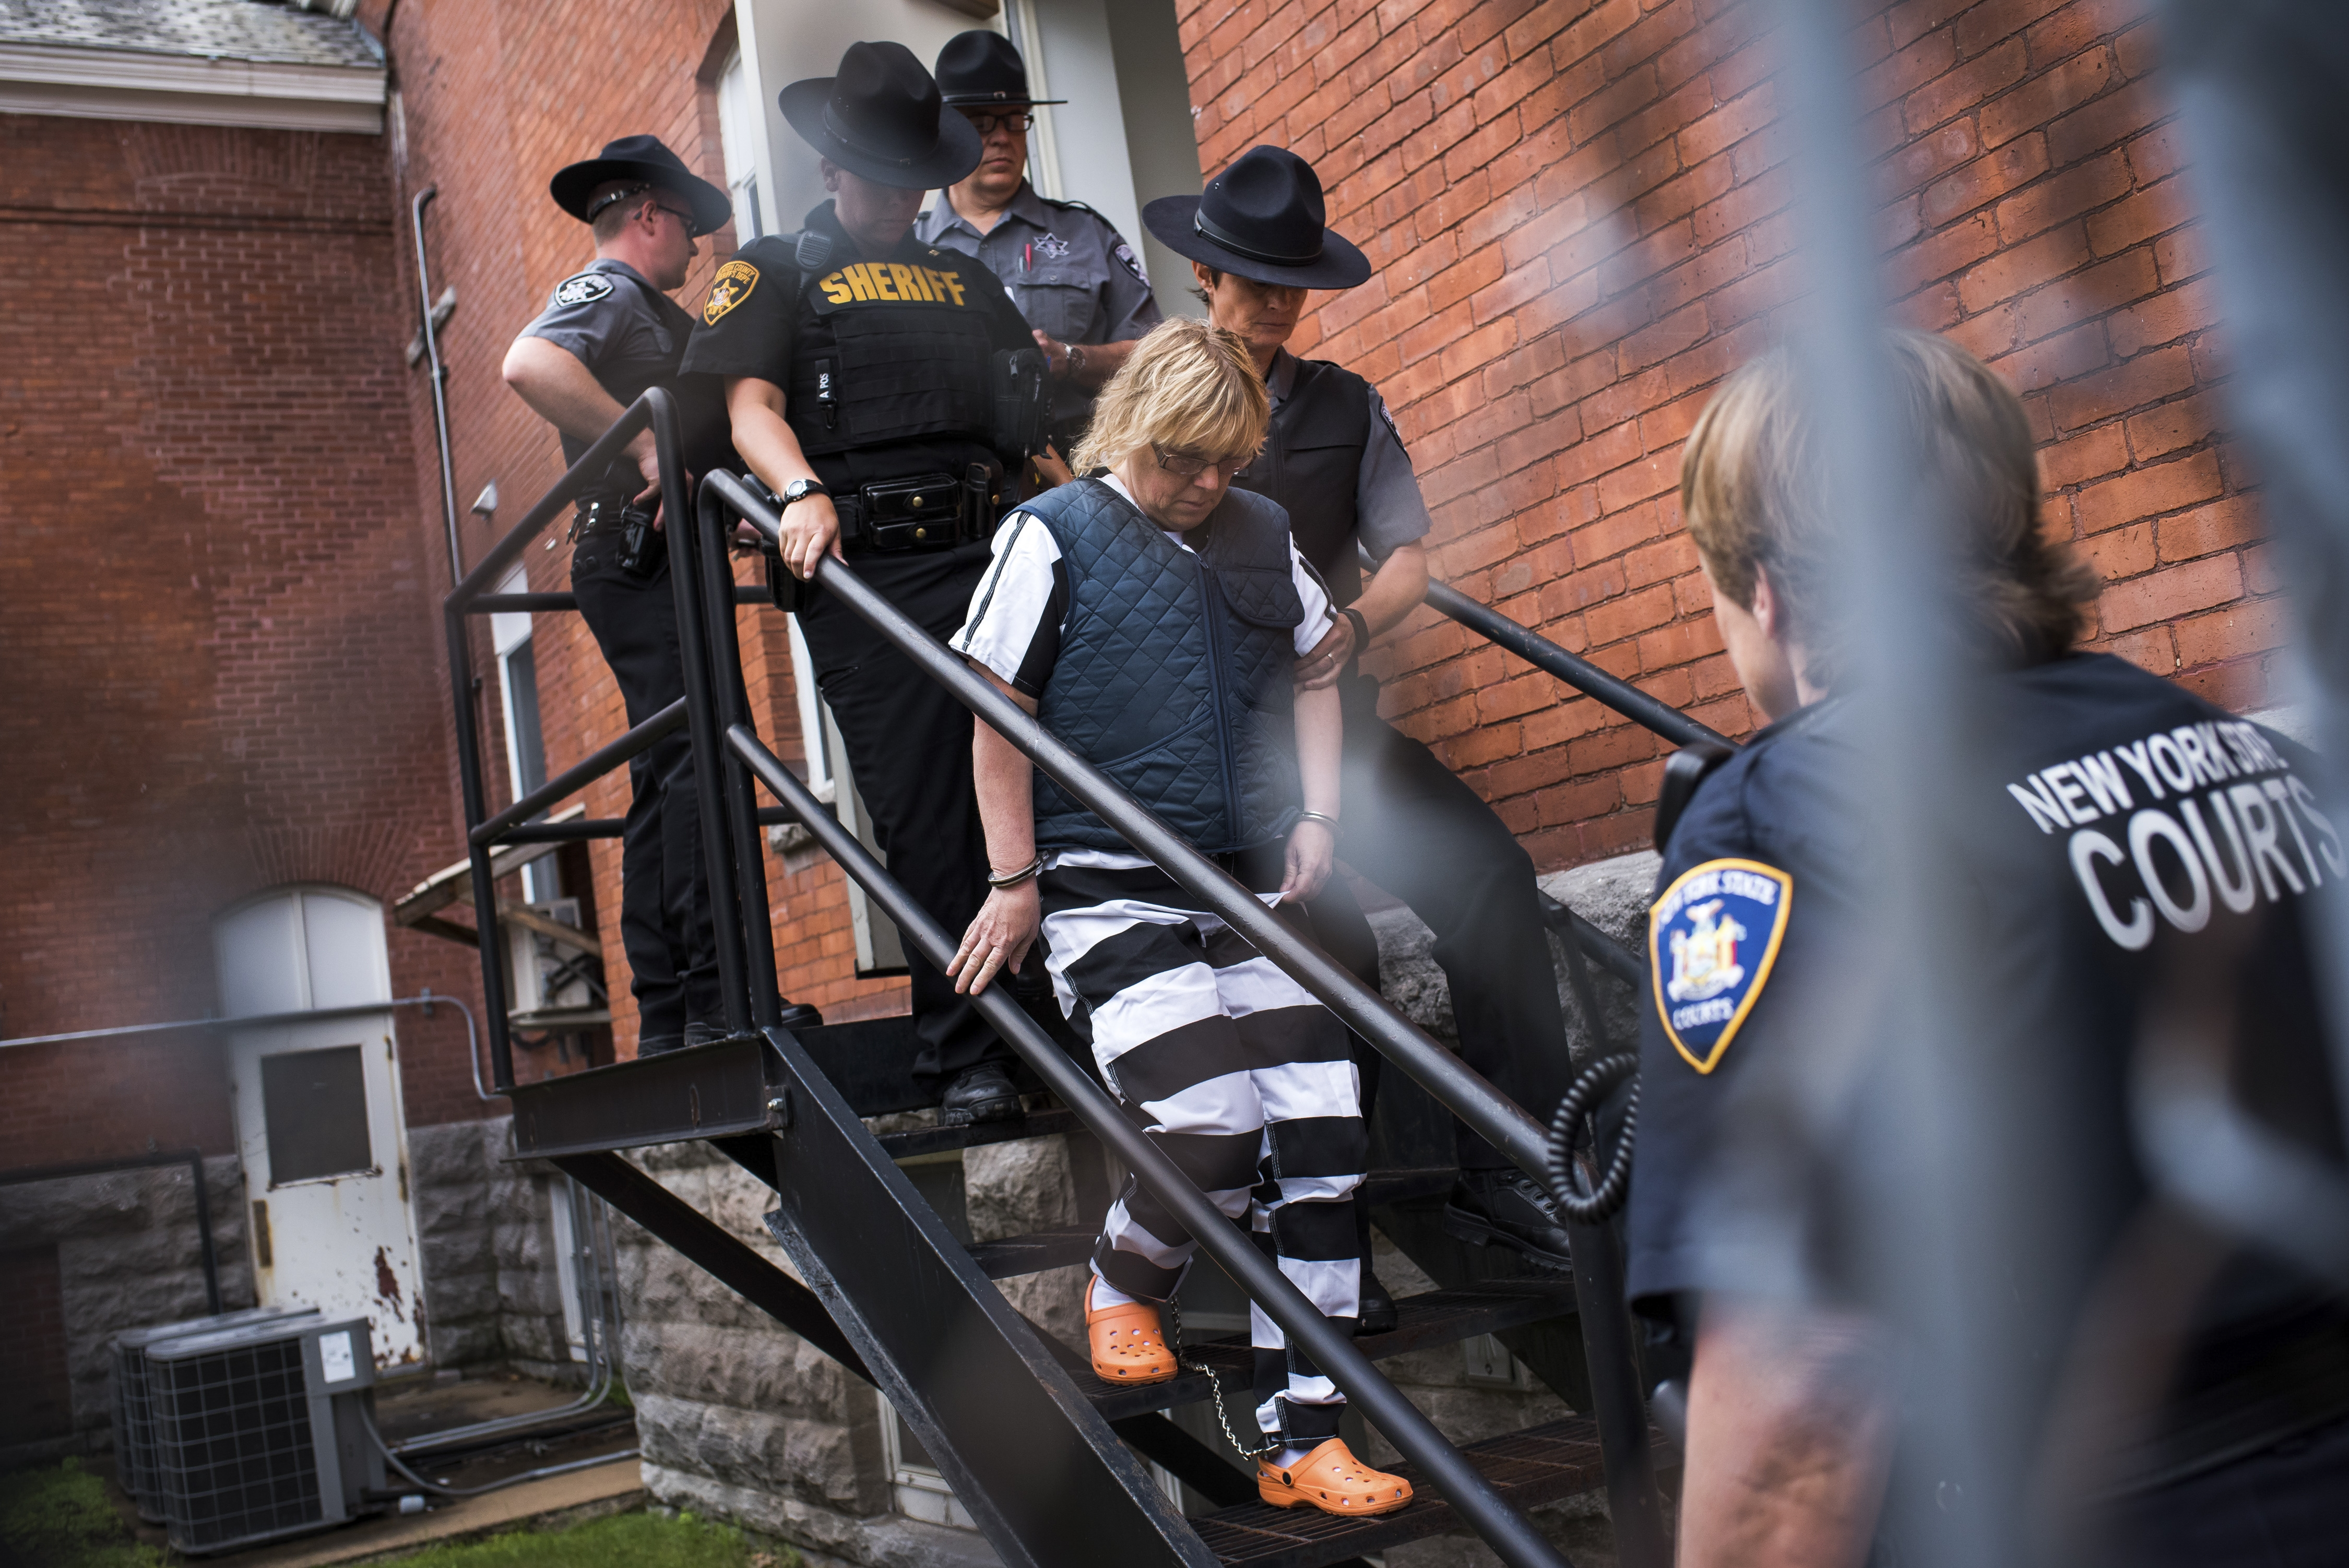 Joyce Mitchell leaves her court hearing in Plattsburgh Monday June 15, 2015. Mitchell, who was a supervisor in Clinton Correctional Facility's tailor shop, stands accused of helping two convicted killers escape. (New York Times)